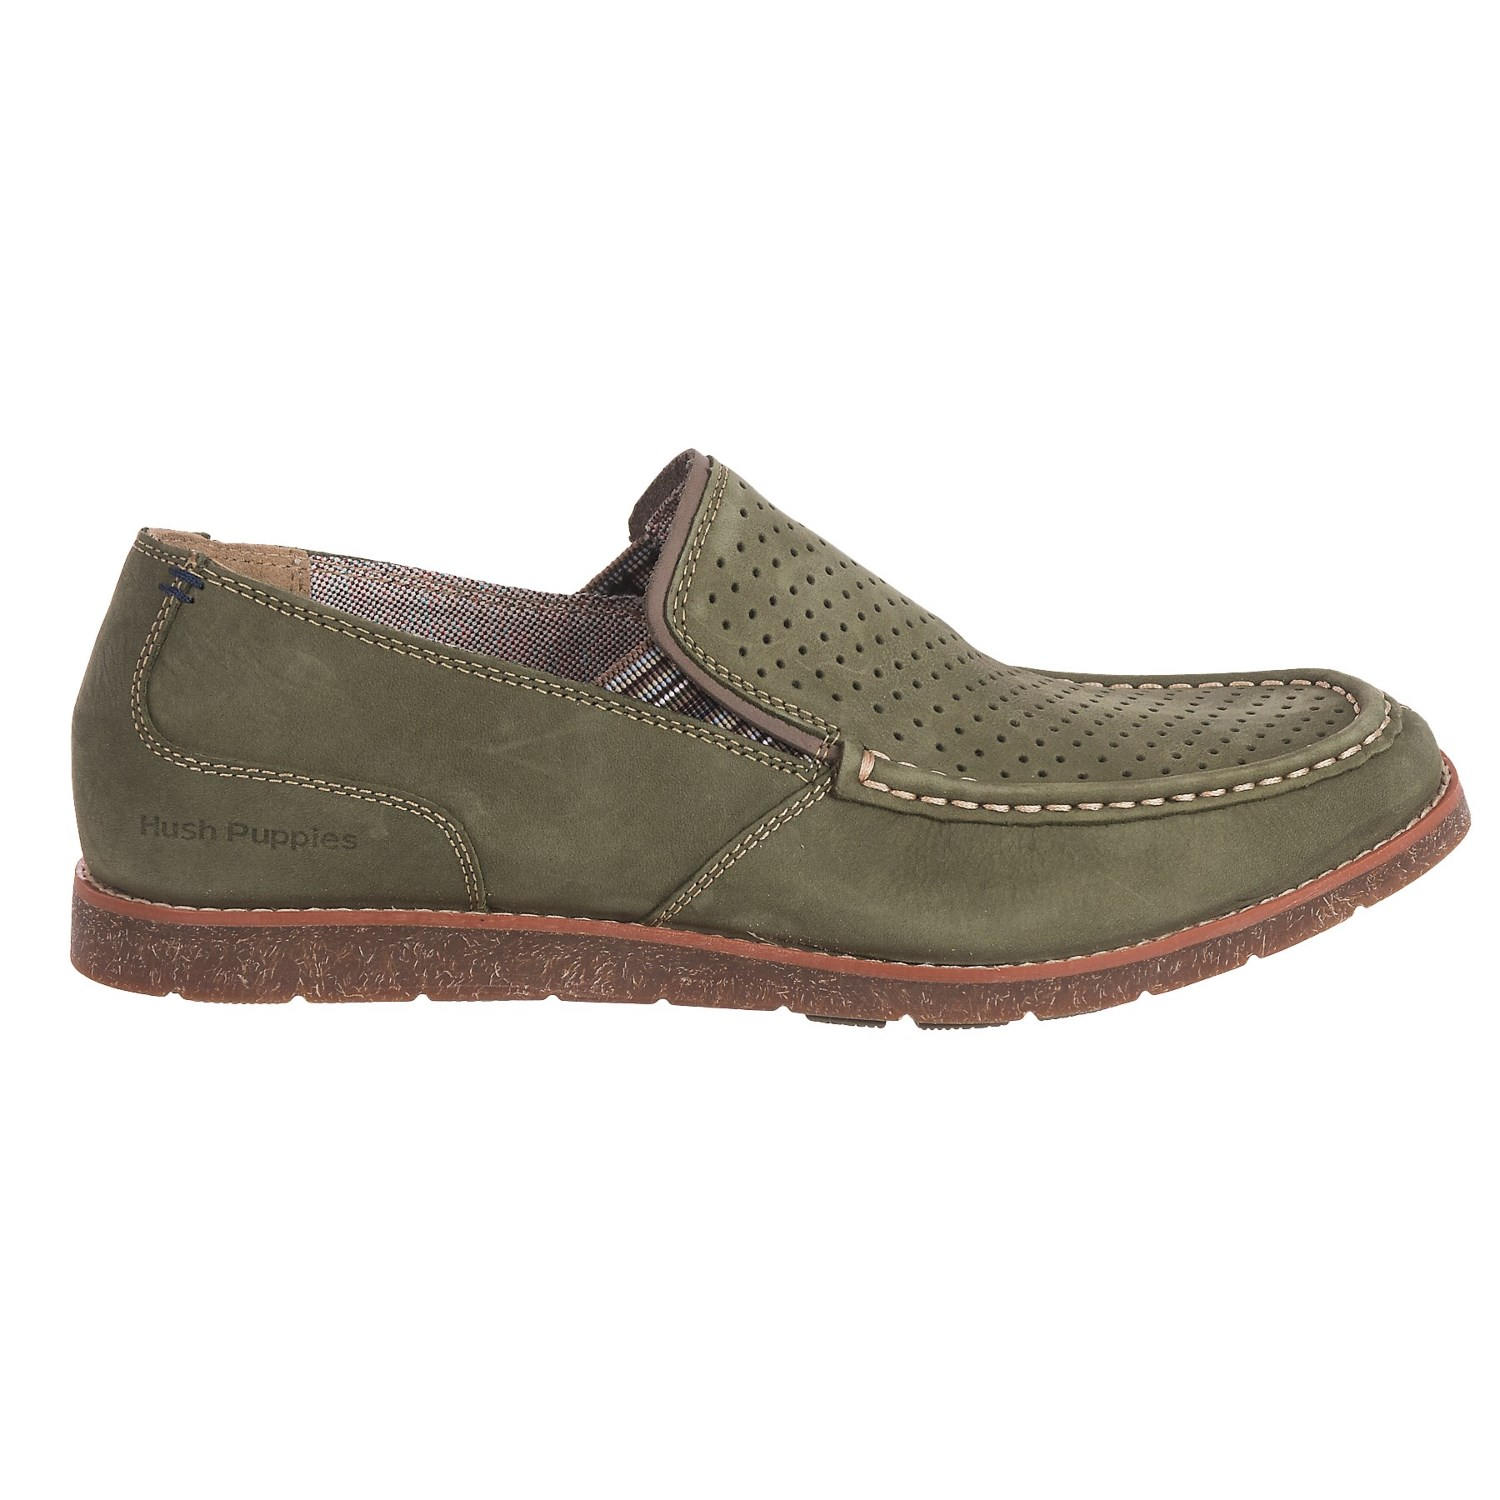 Mens Runner Slip on Moccasins Hush Puppies Clearance Online Cheap Real Cheap Sale Professional Free Shipping Best Place jgCF3Ar